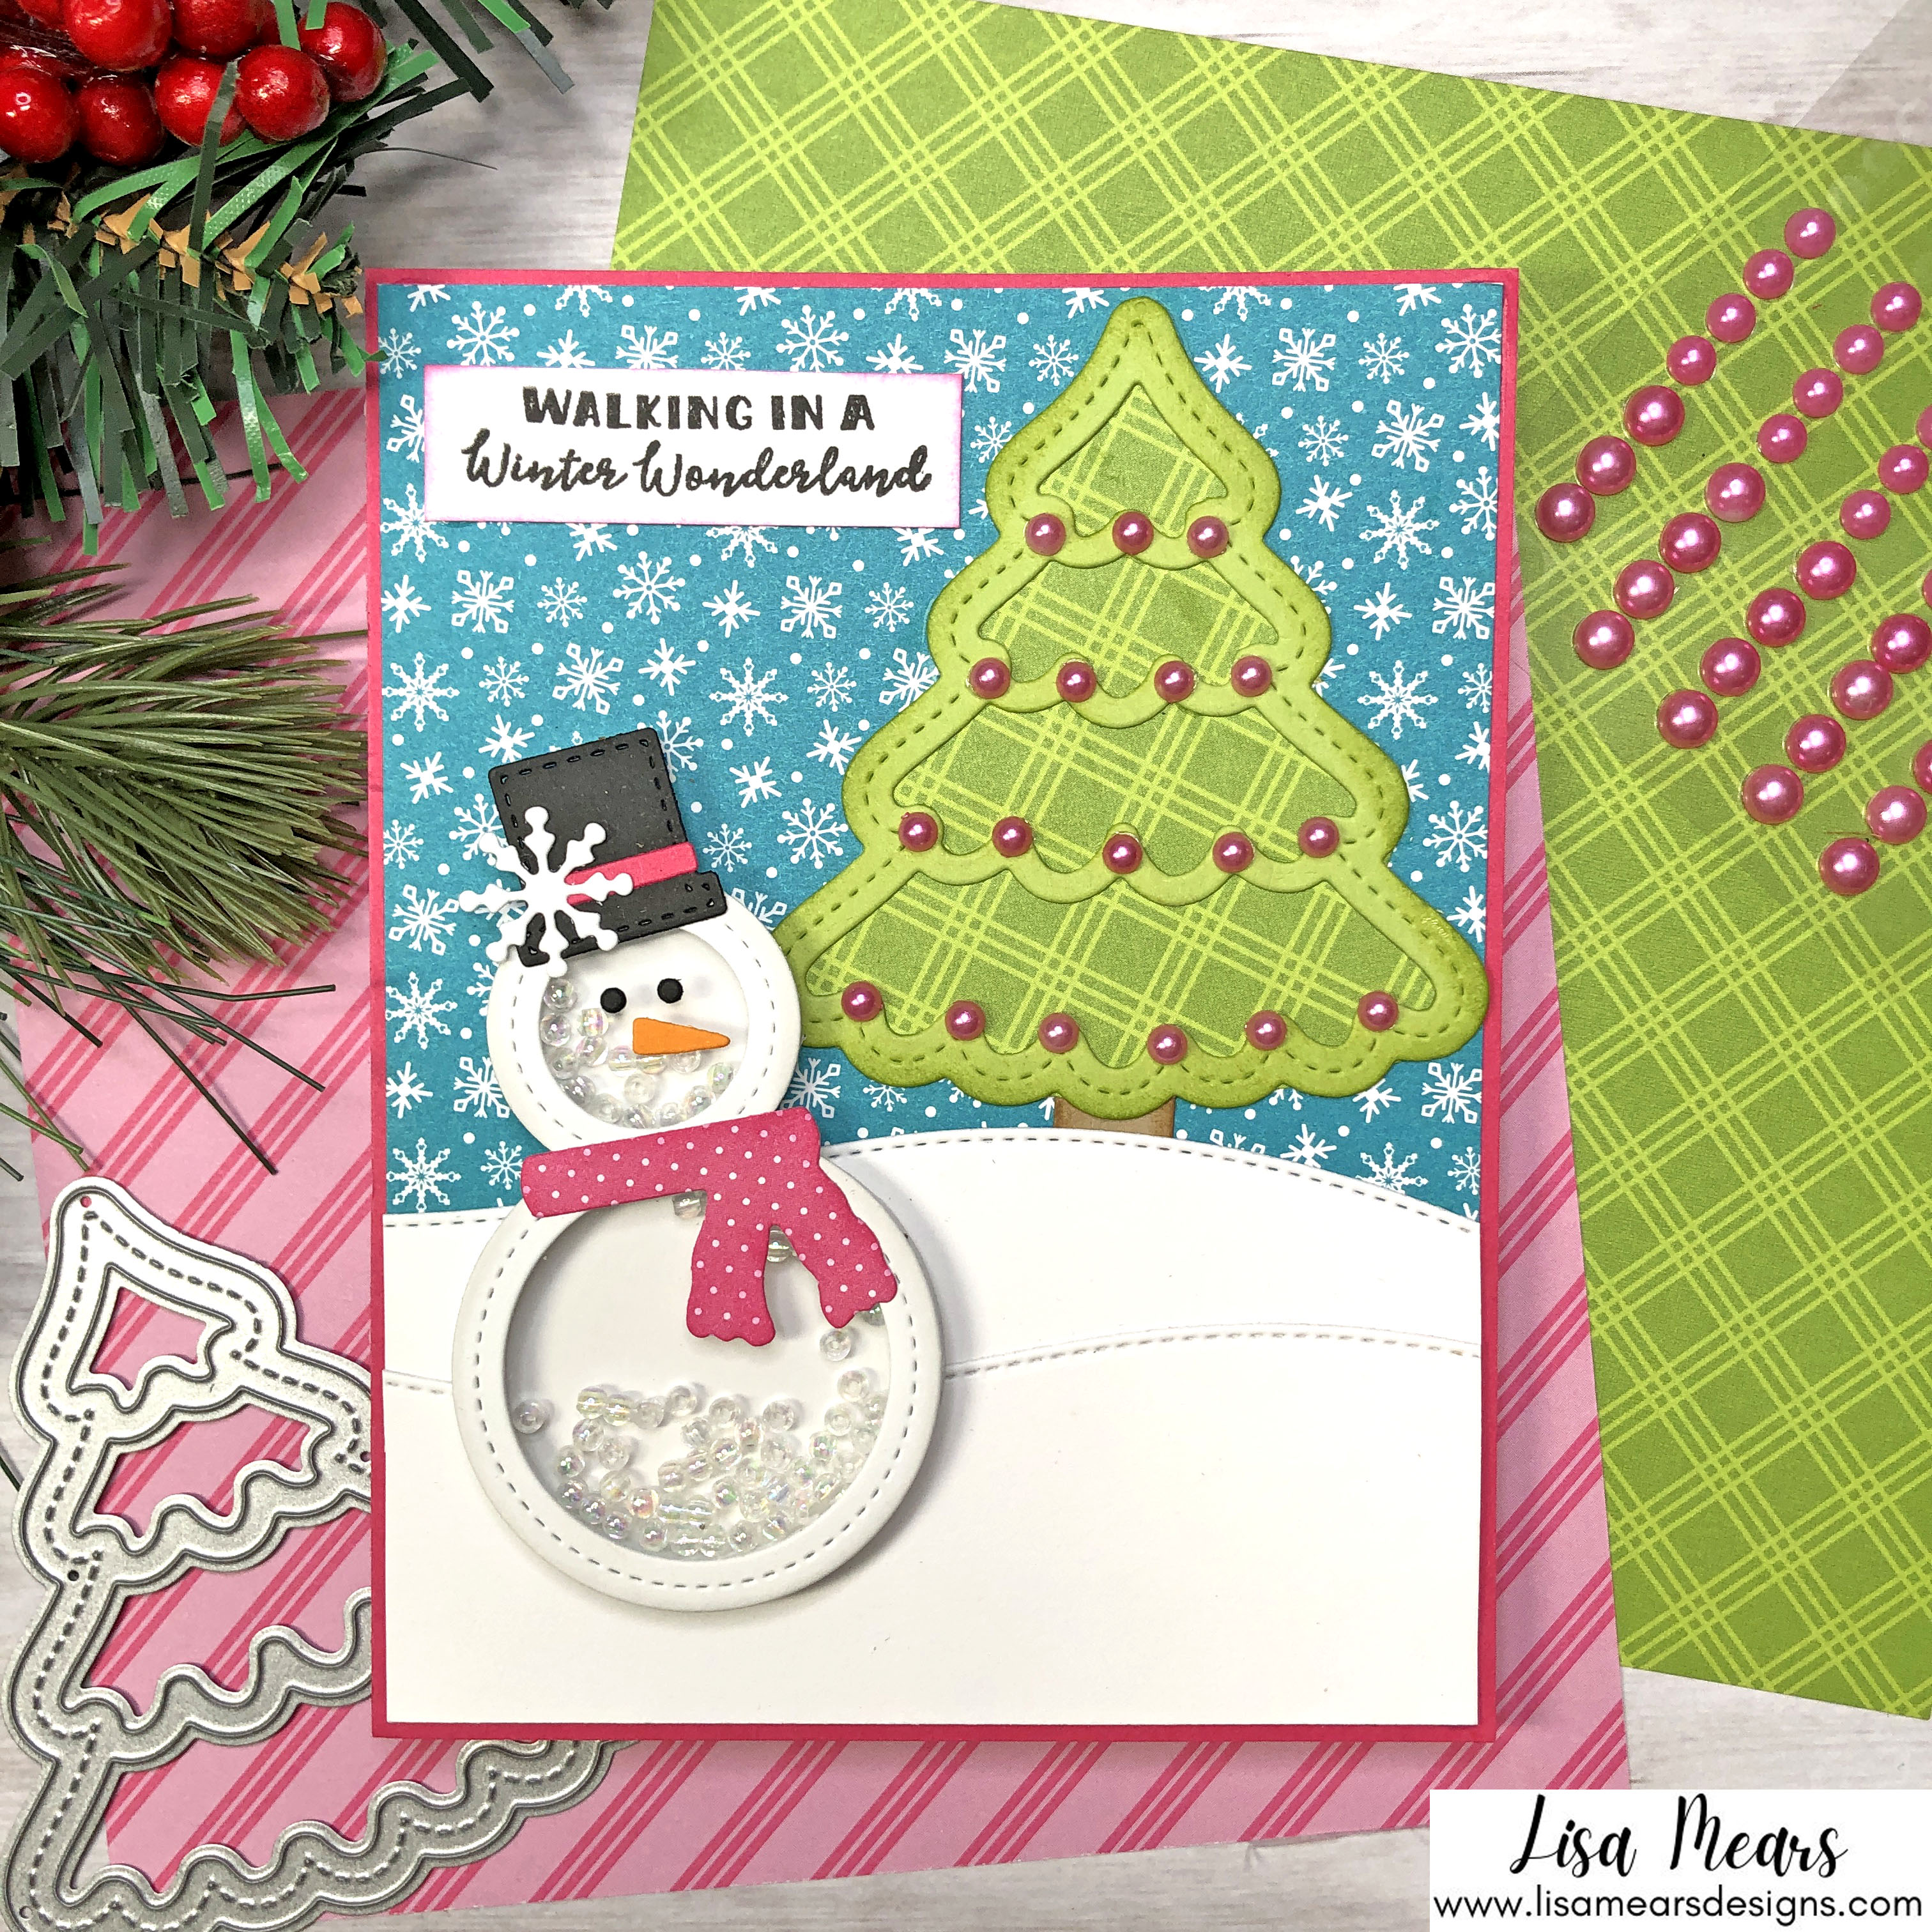 Queen and Company Jolly Jingles Shaker Kit - 10 Cards 1 Kit - Snowman Shaker Card